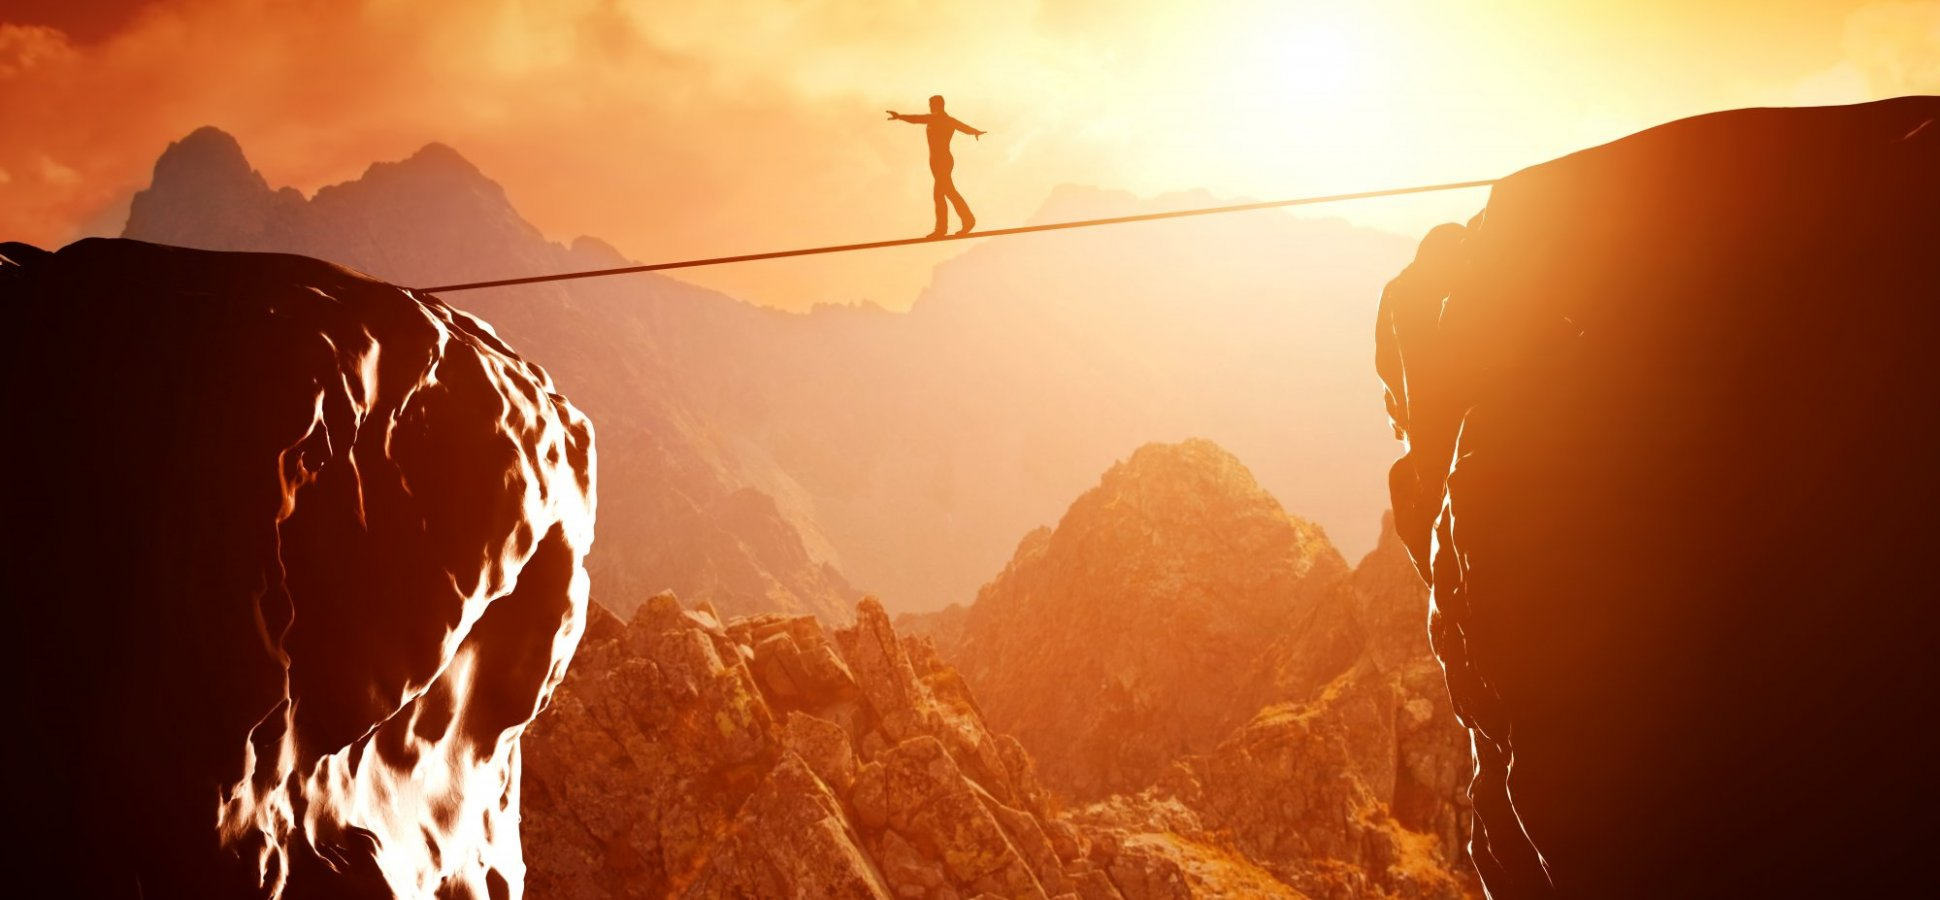 Want More Success in Your Career and Life? My Favorite 3 TED Talks on the Power of Taking Risks